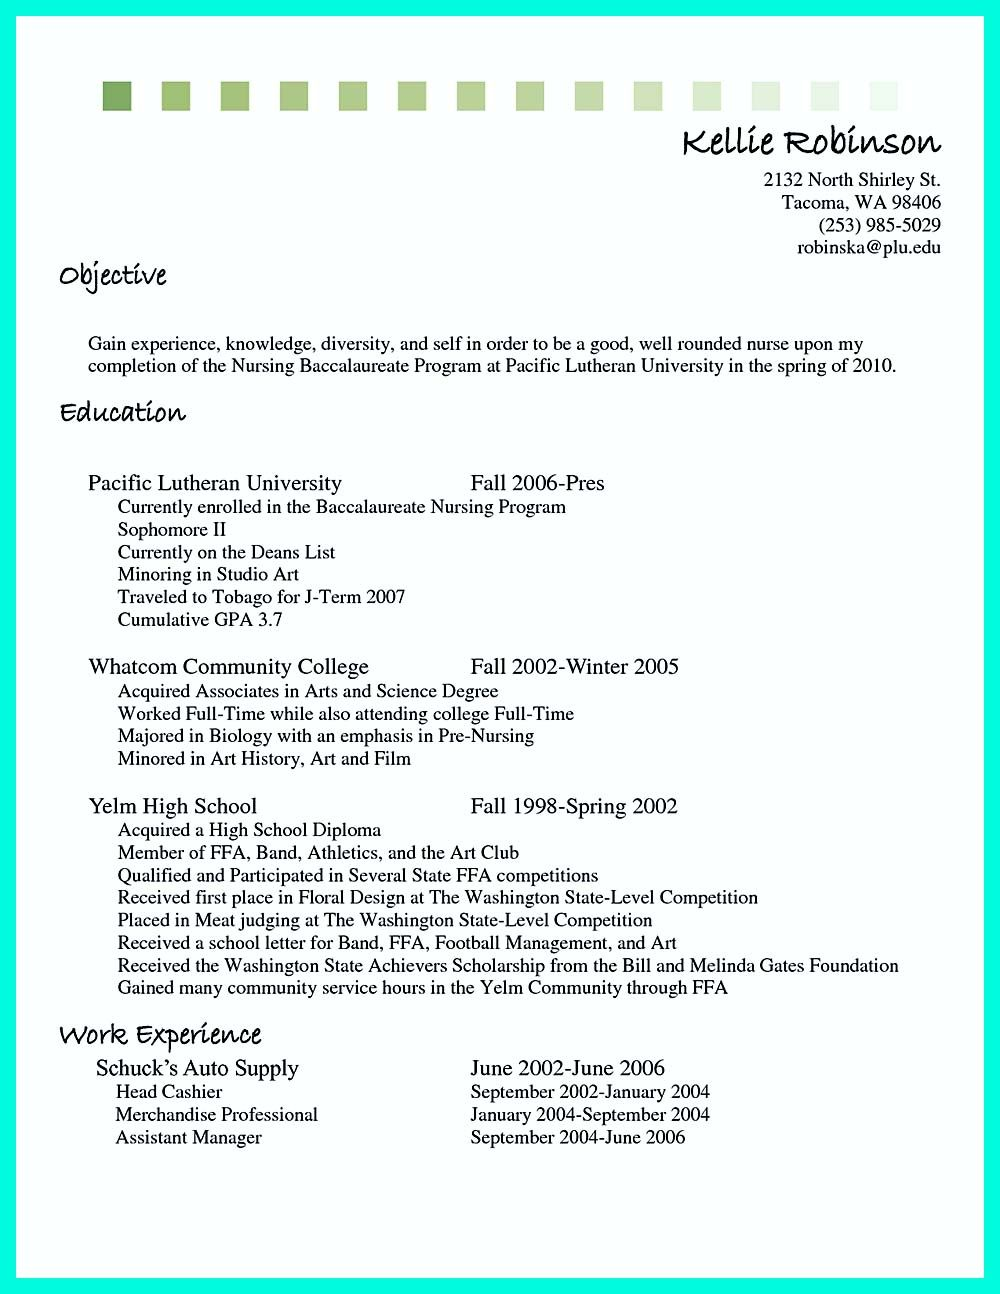 Cashier Resume Skills Amusing If You Want To Make A Great And Impressive Cashier Resume Make Sure .